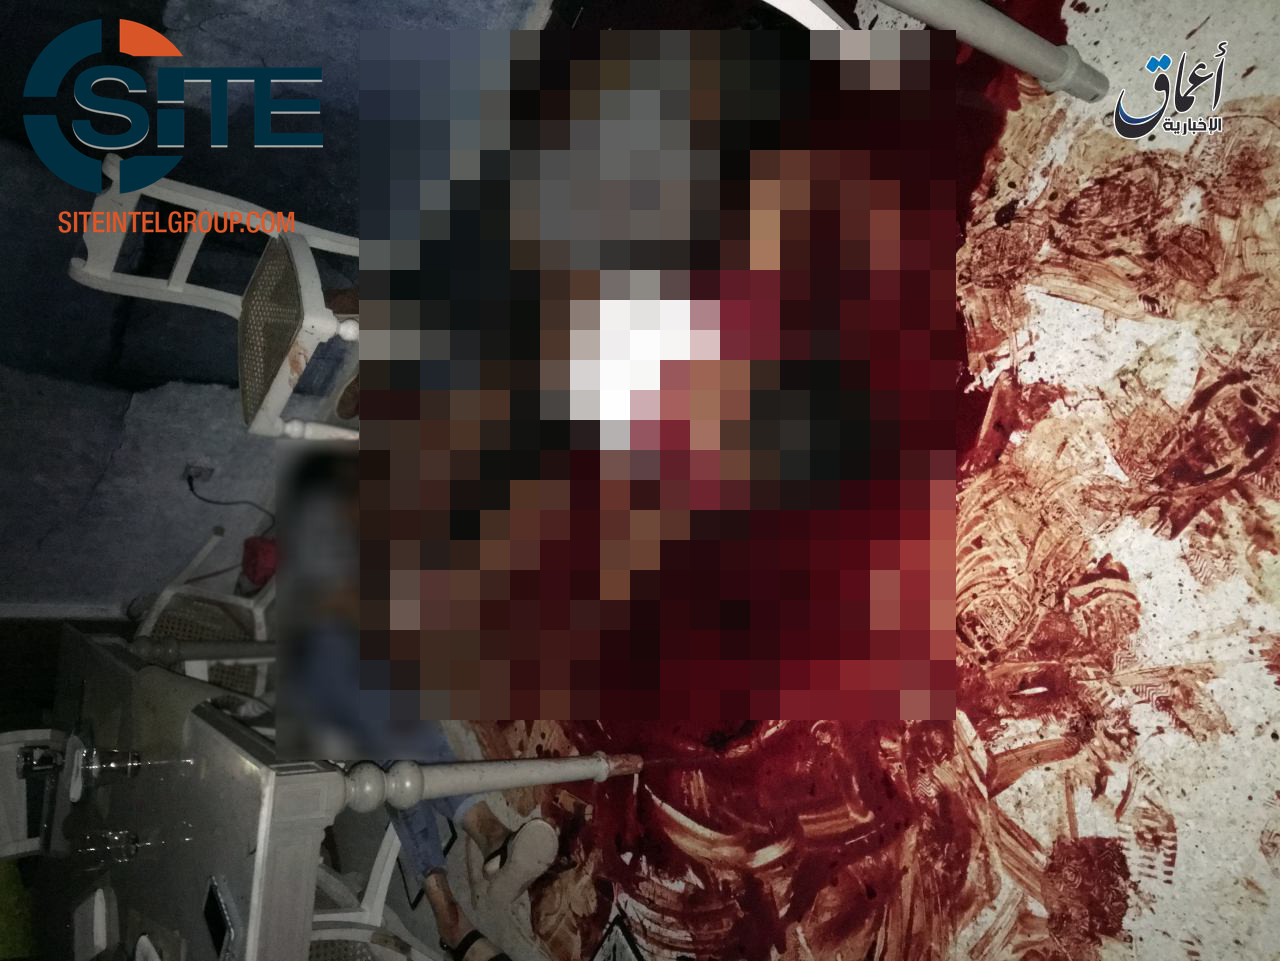 Inside Küchennews ~ is''amaq news gives photos of bloody scene inside